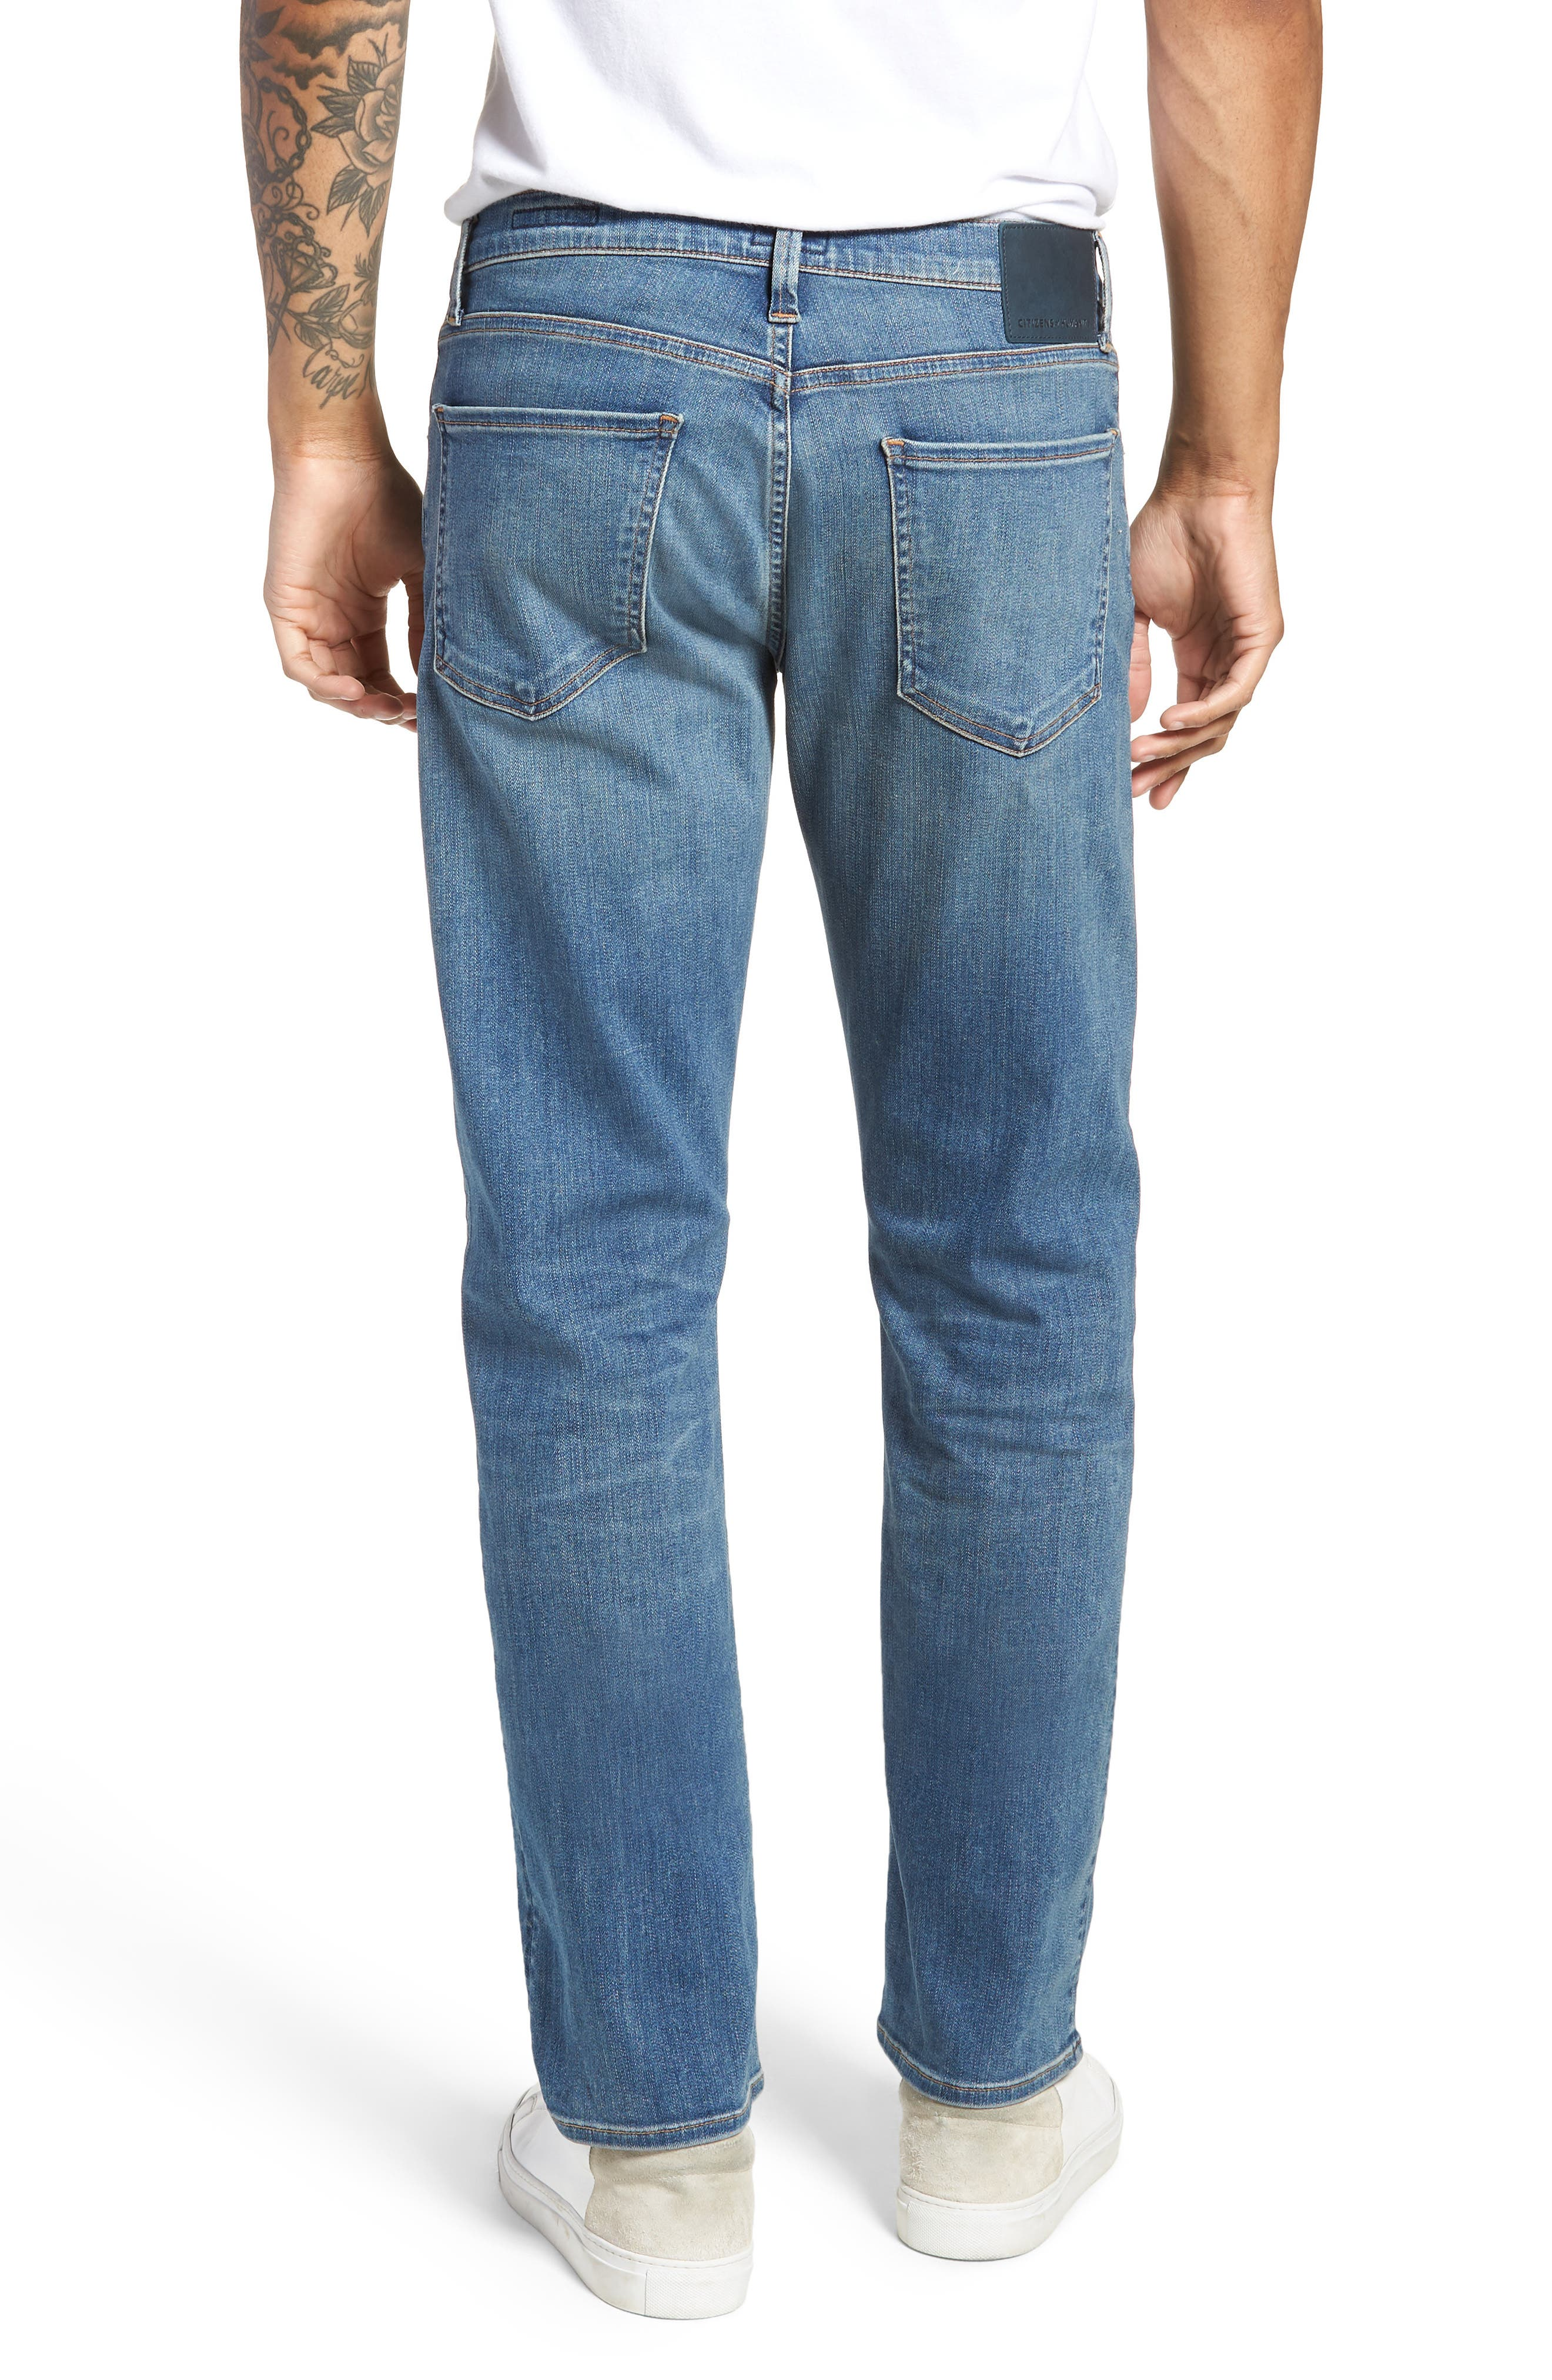 Perform - Gage Slim Straight Leg Jeans,                             Alternate thumbnail 2, color,                             456